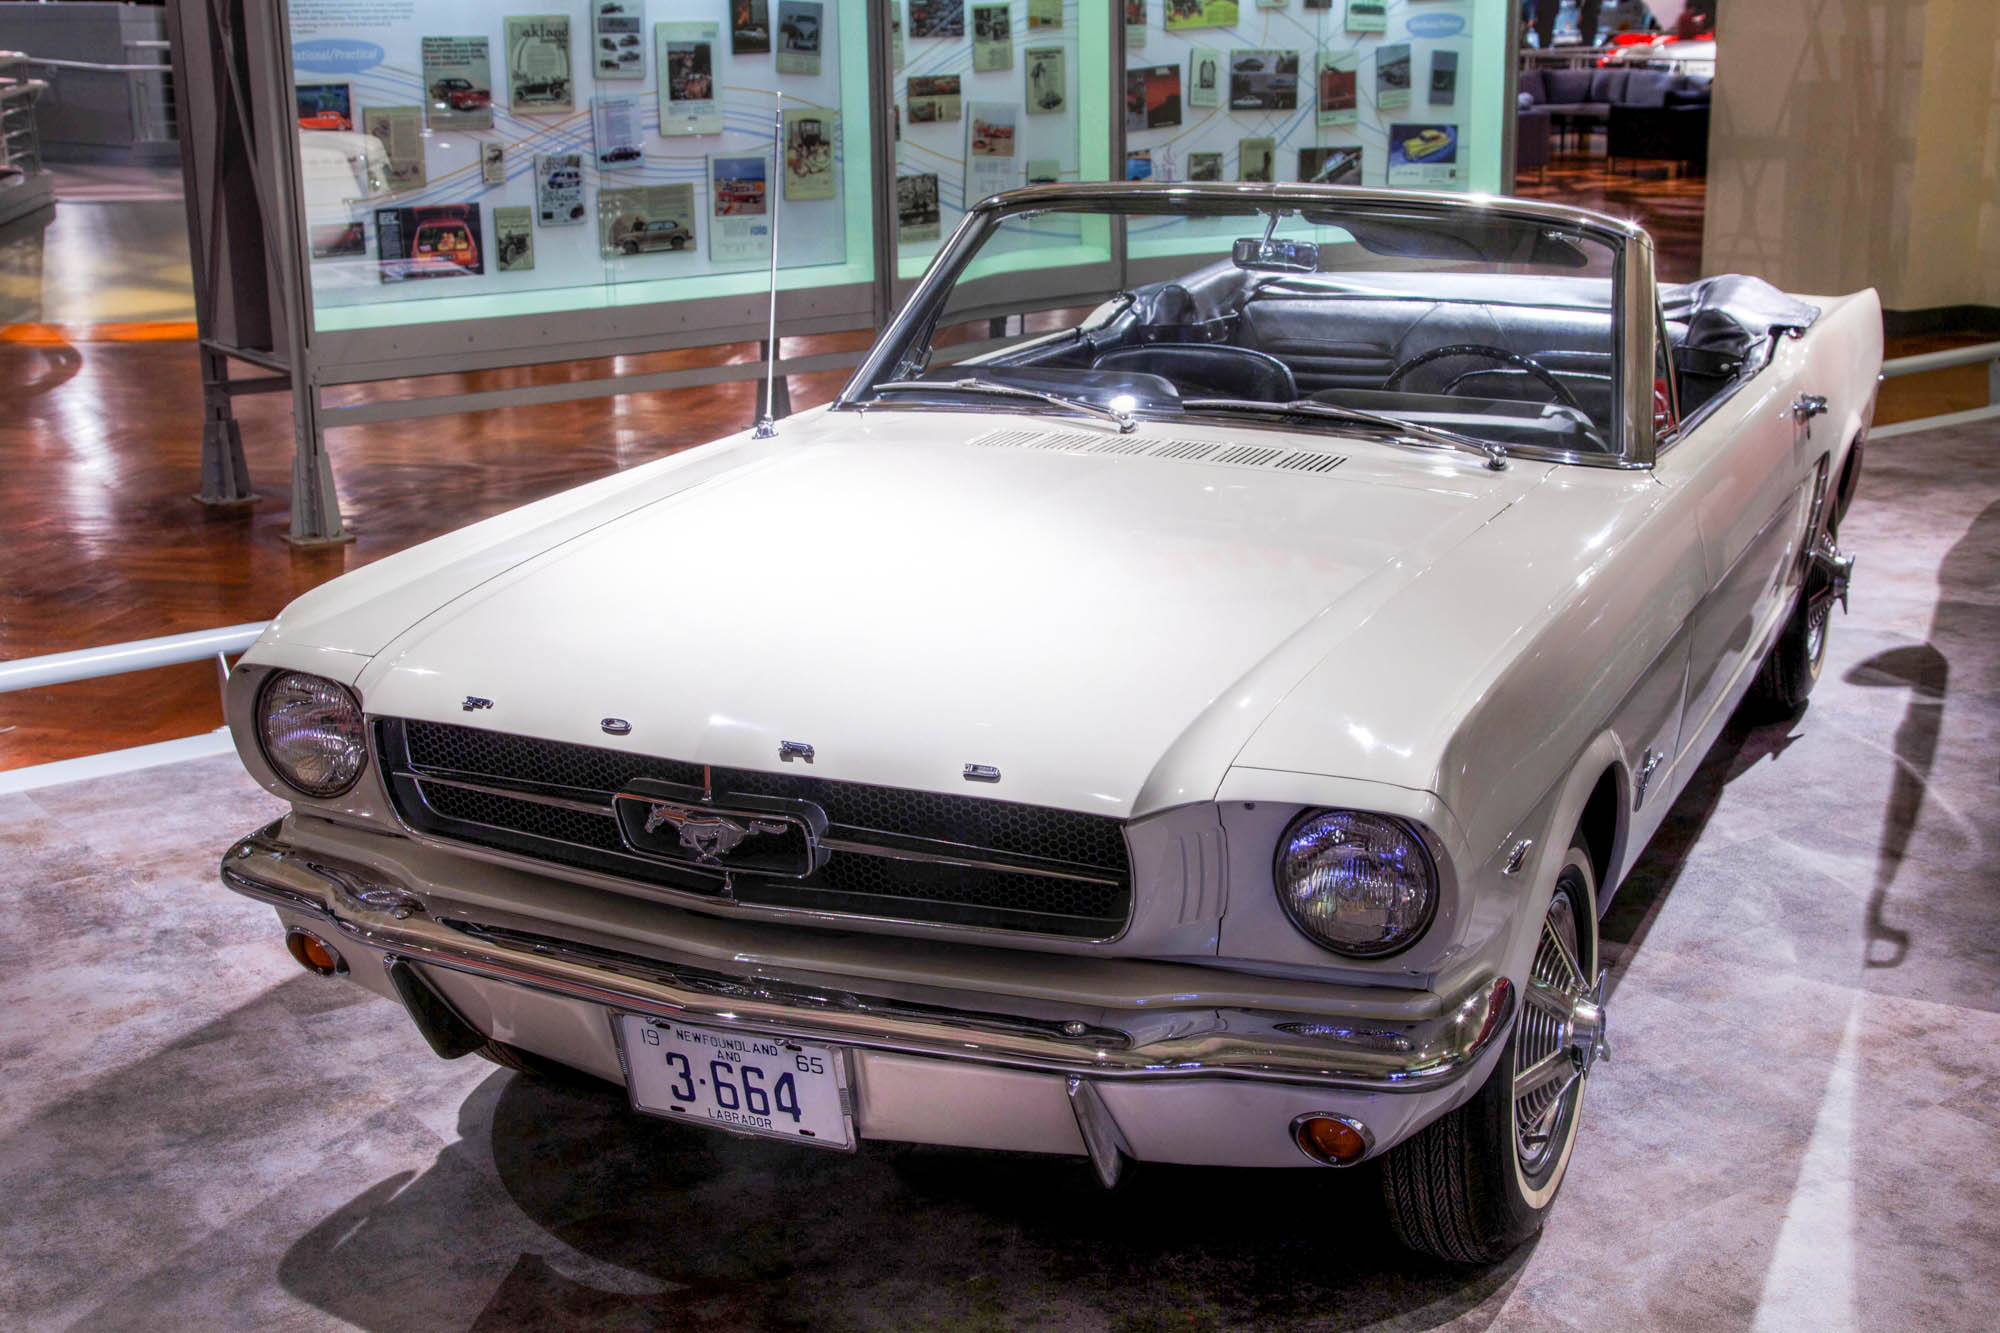 1964½ mustang convertible serial 1 sold to stanley tucker who was given the one millionth mustang in exchange for his historic car